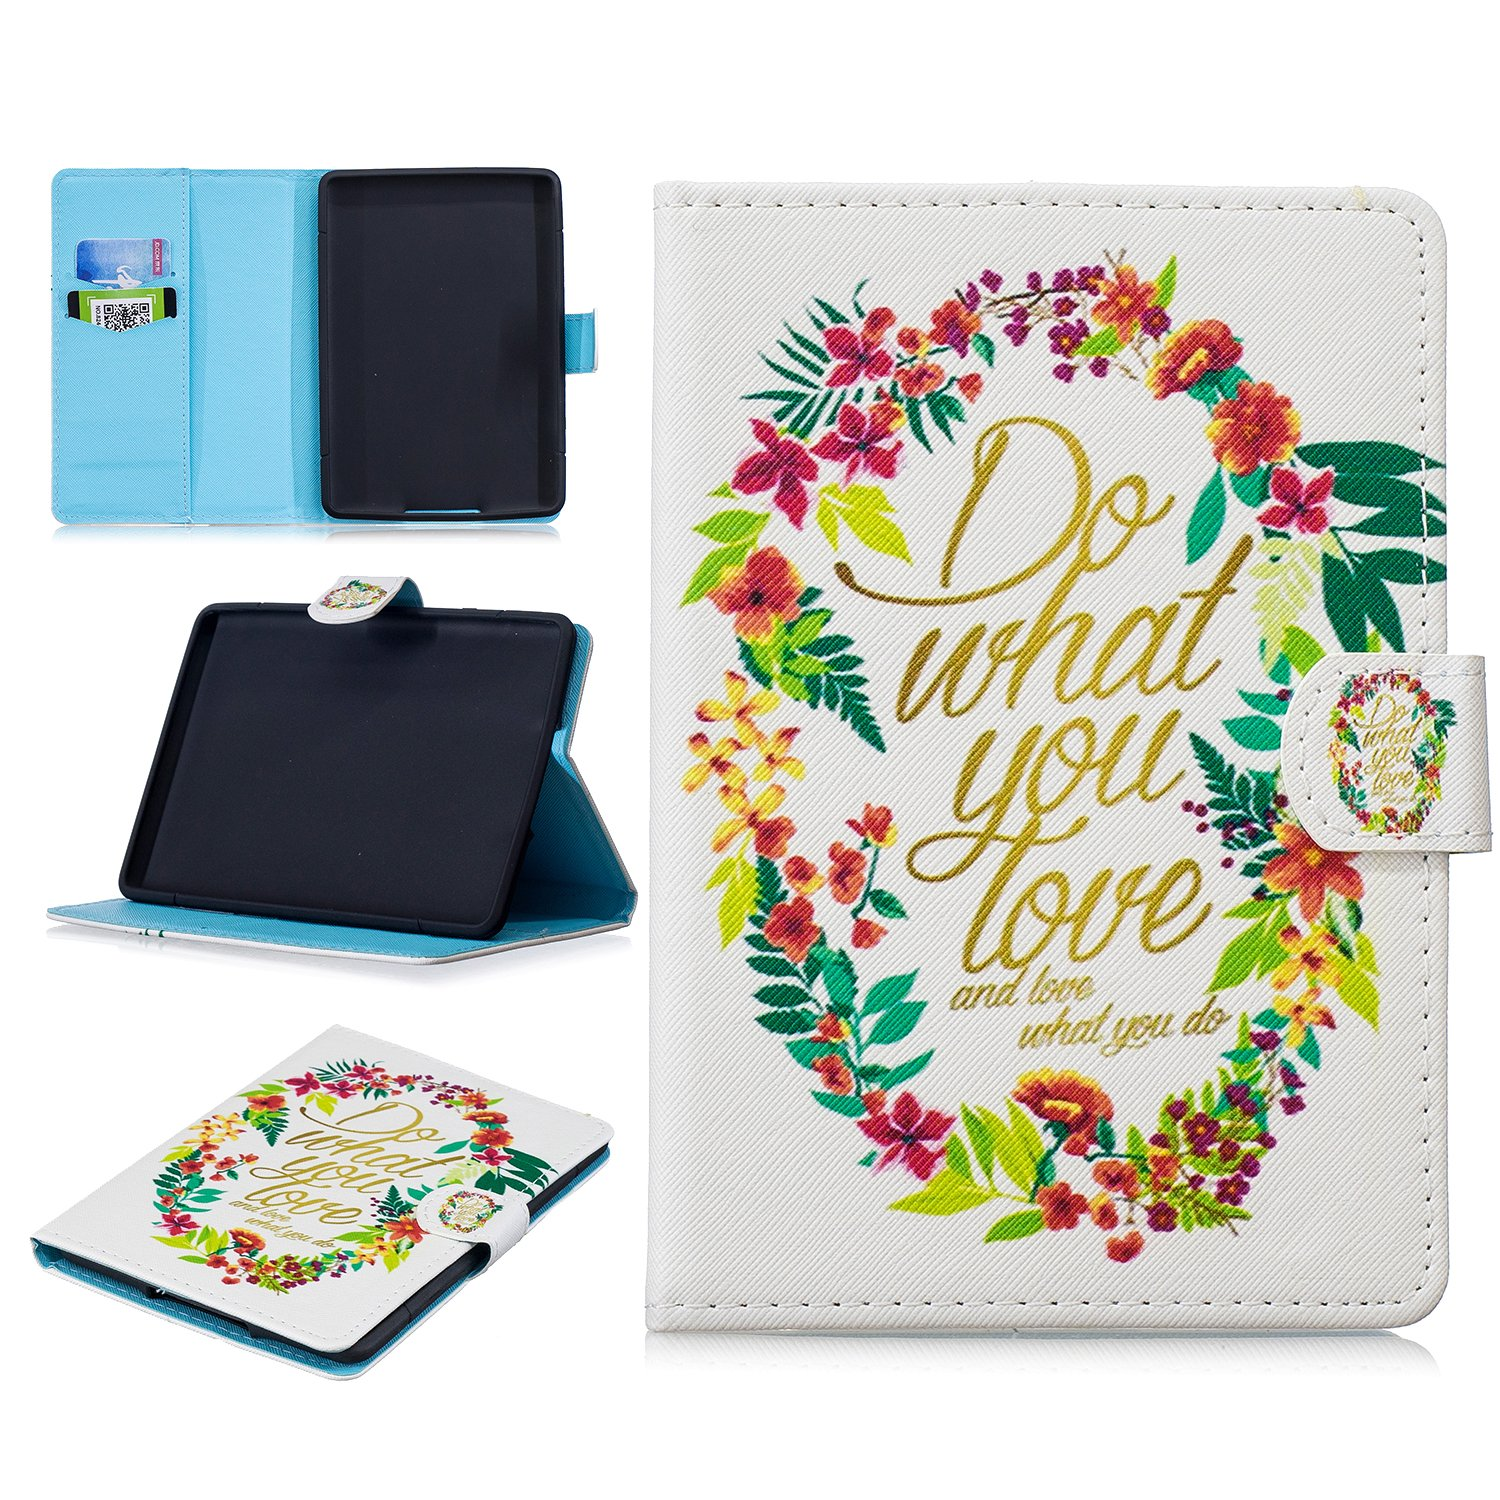 Leather Cover Flip Wallet Card Slot Smart Case with Cover Stand for All-New  Kindle Paperwhite Fits All Generations yuandaquan Covers Cases for  Kindle Paperwhite 1//2//3 6